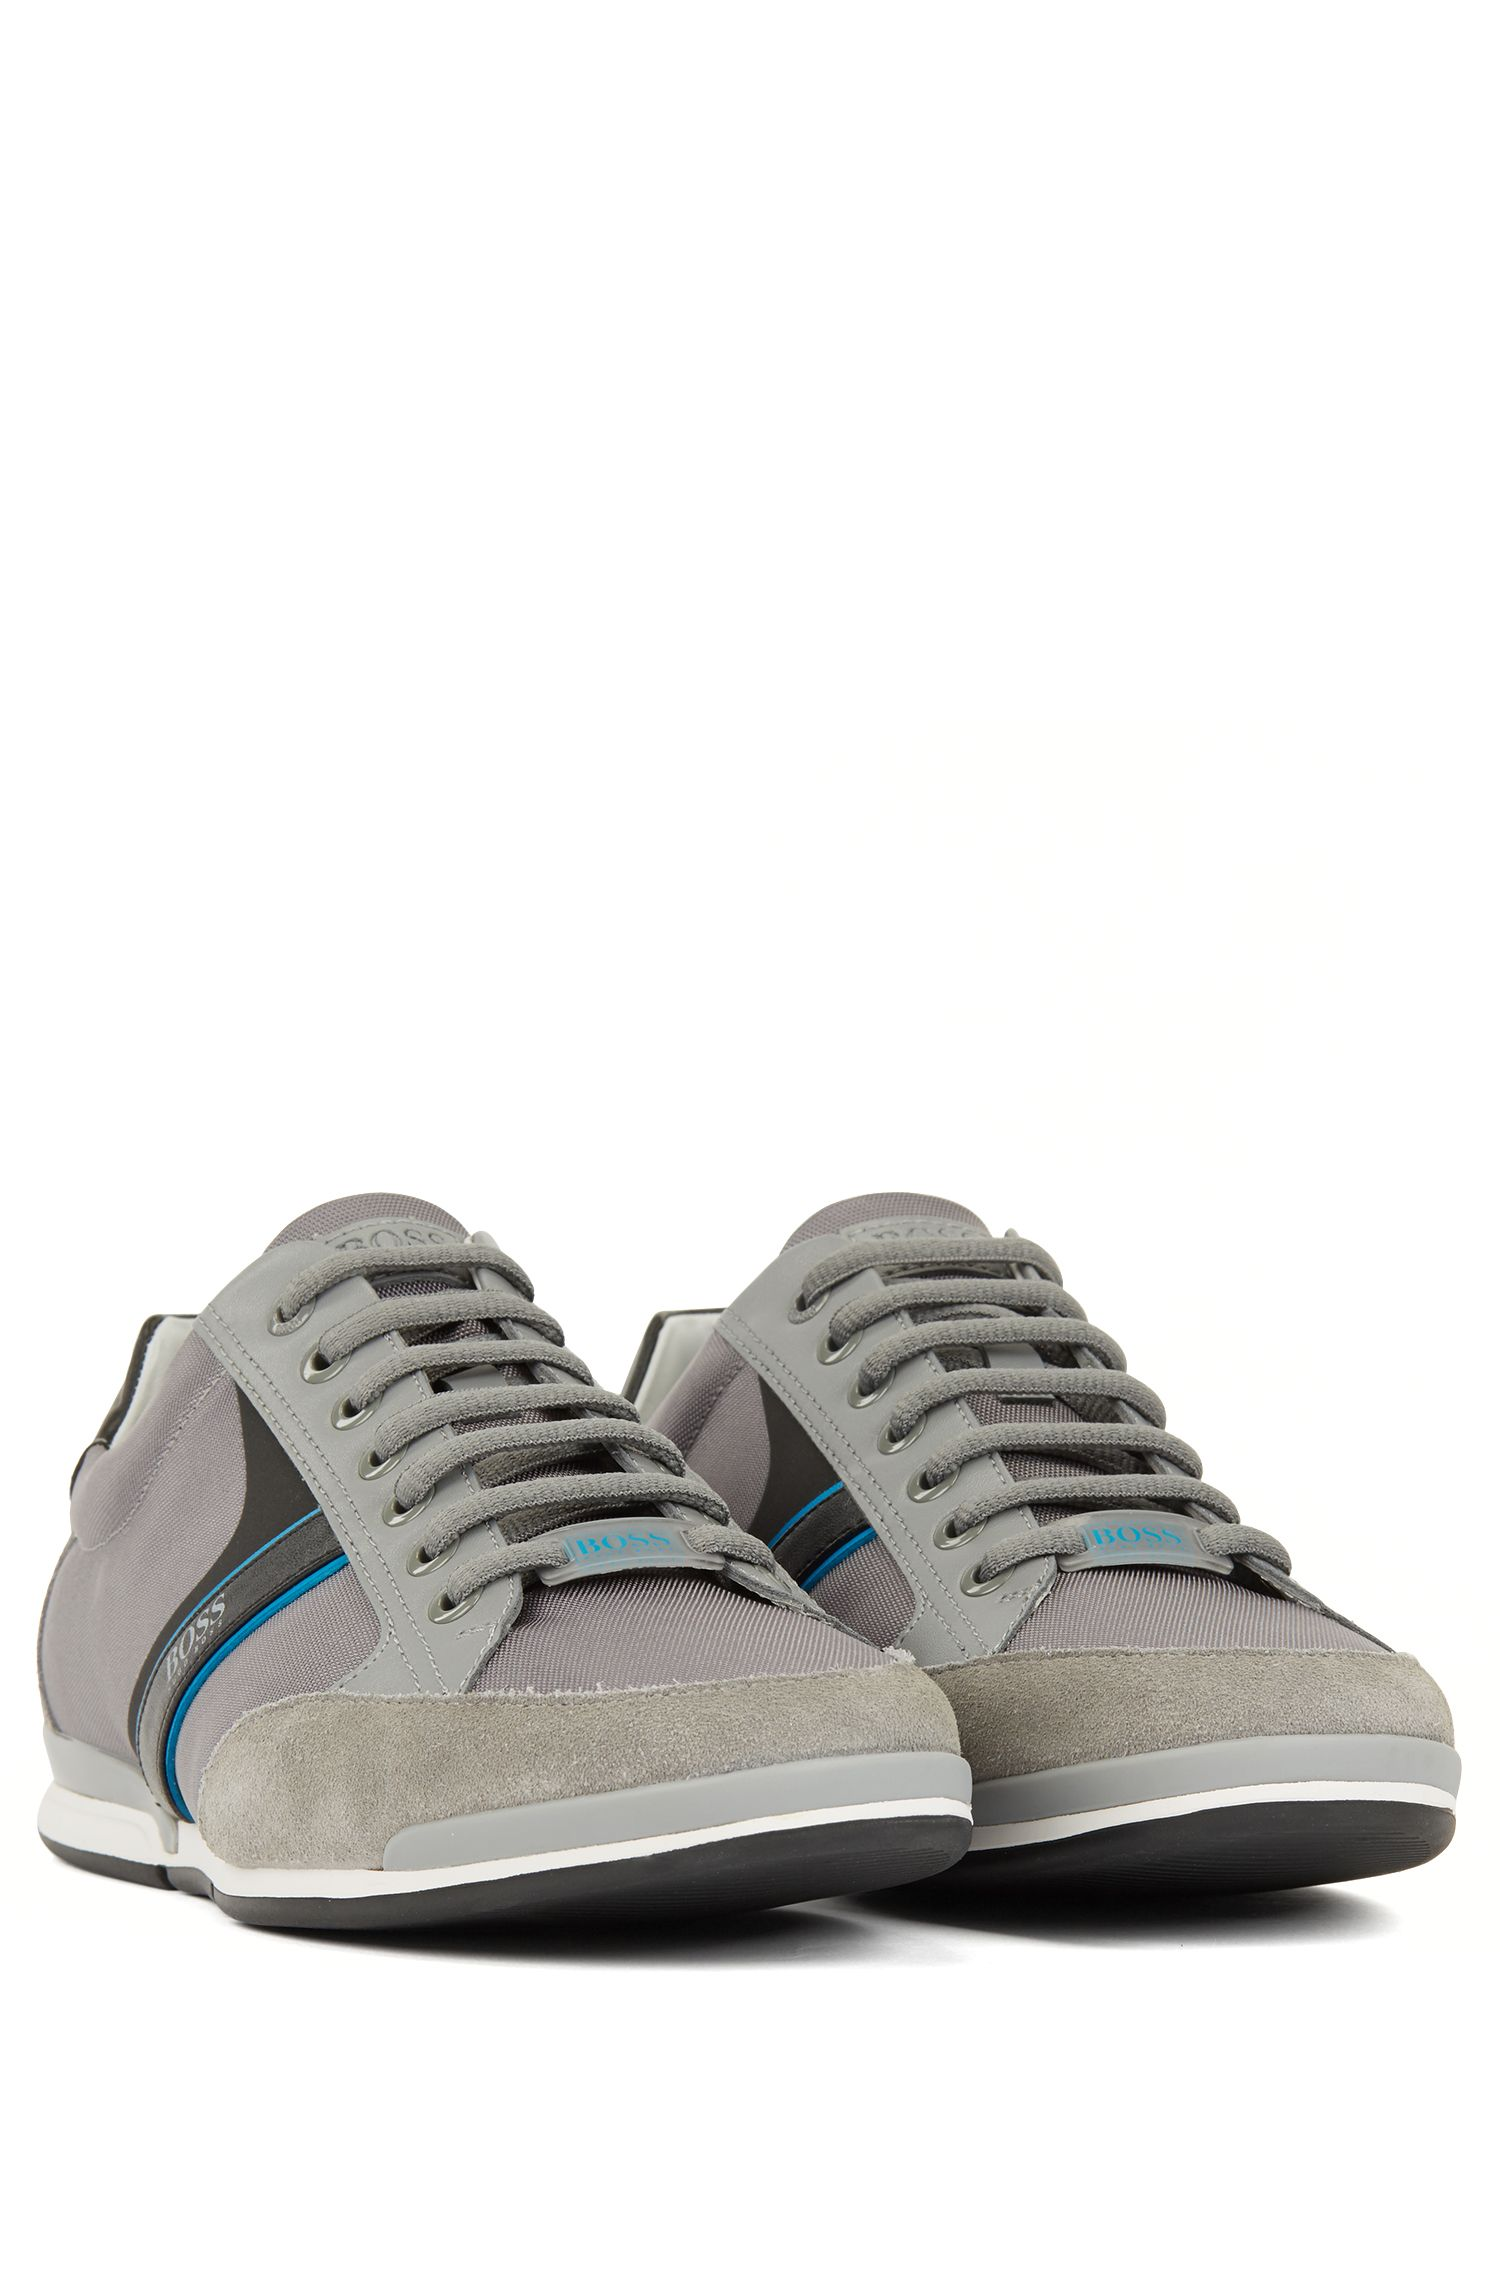 Hugo Boss - Lace-up hybrid trainers with moisture-wicking lining - 2